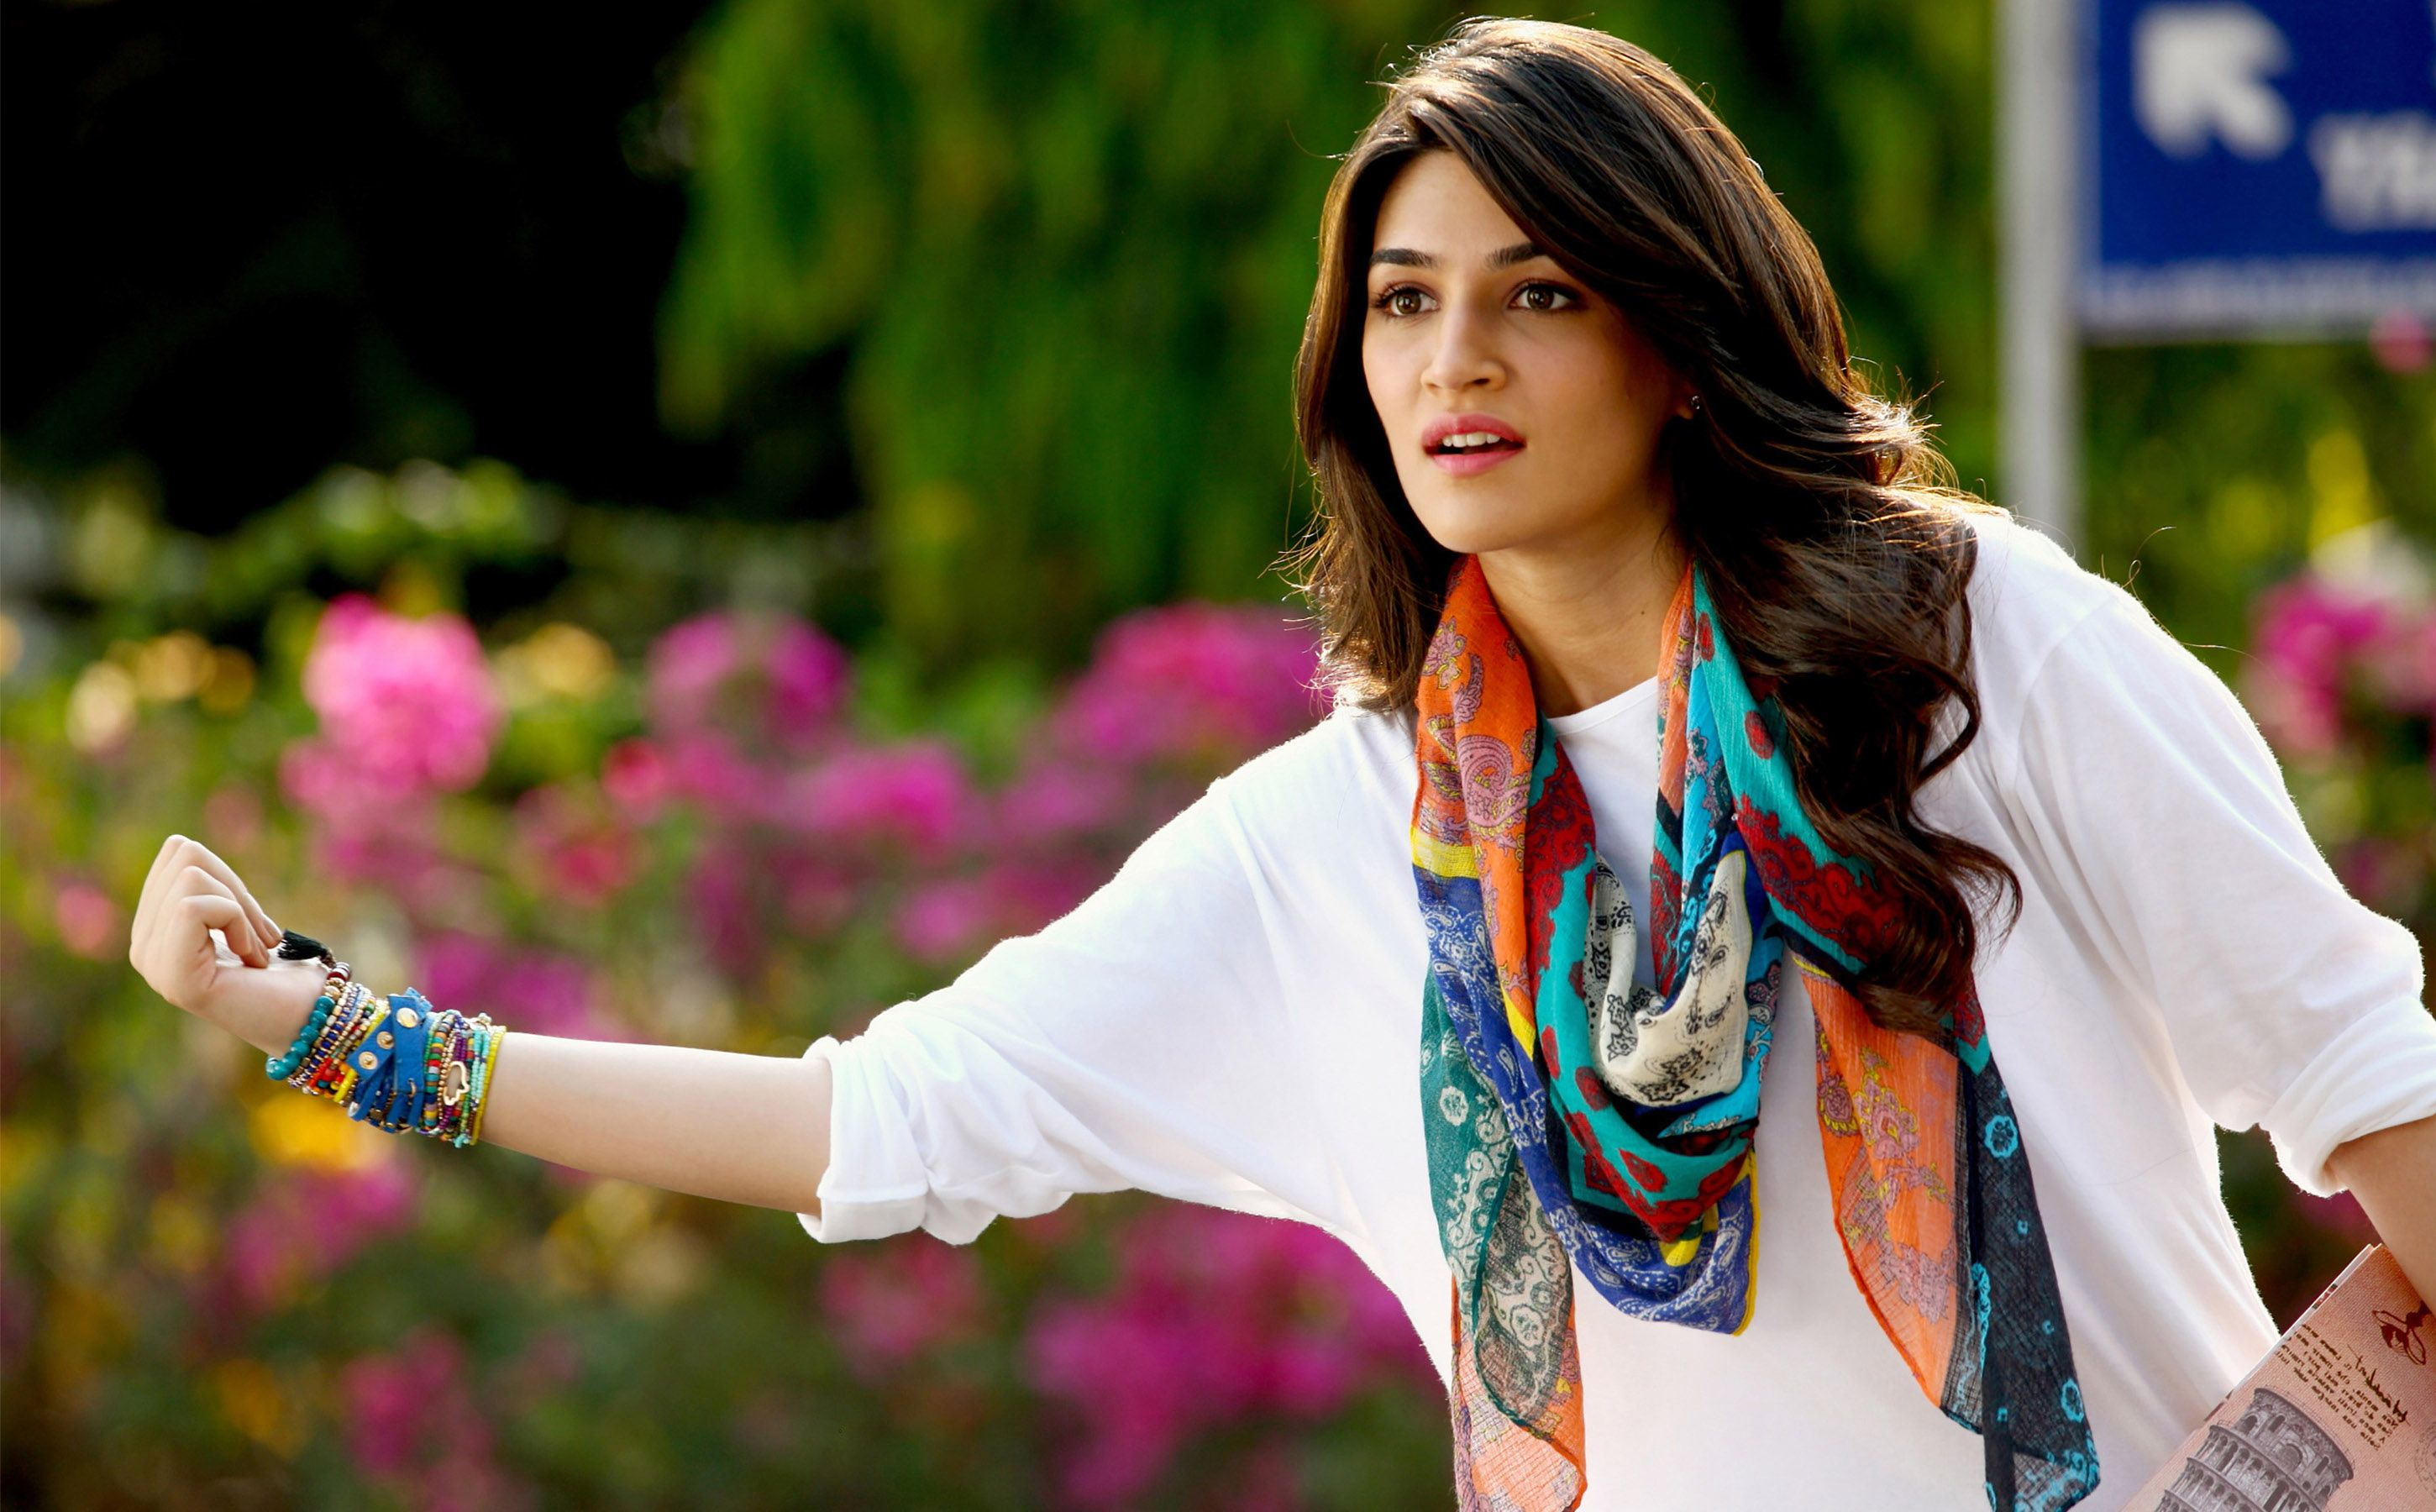 kriti-sanon-hd-wallpapers-9 #kritisonanhdwallpapers #kritisonan